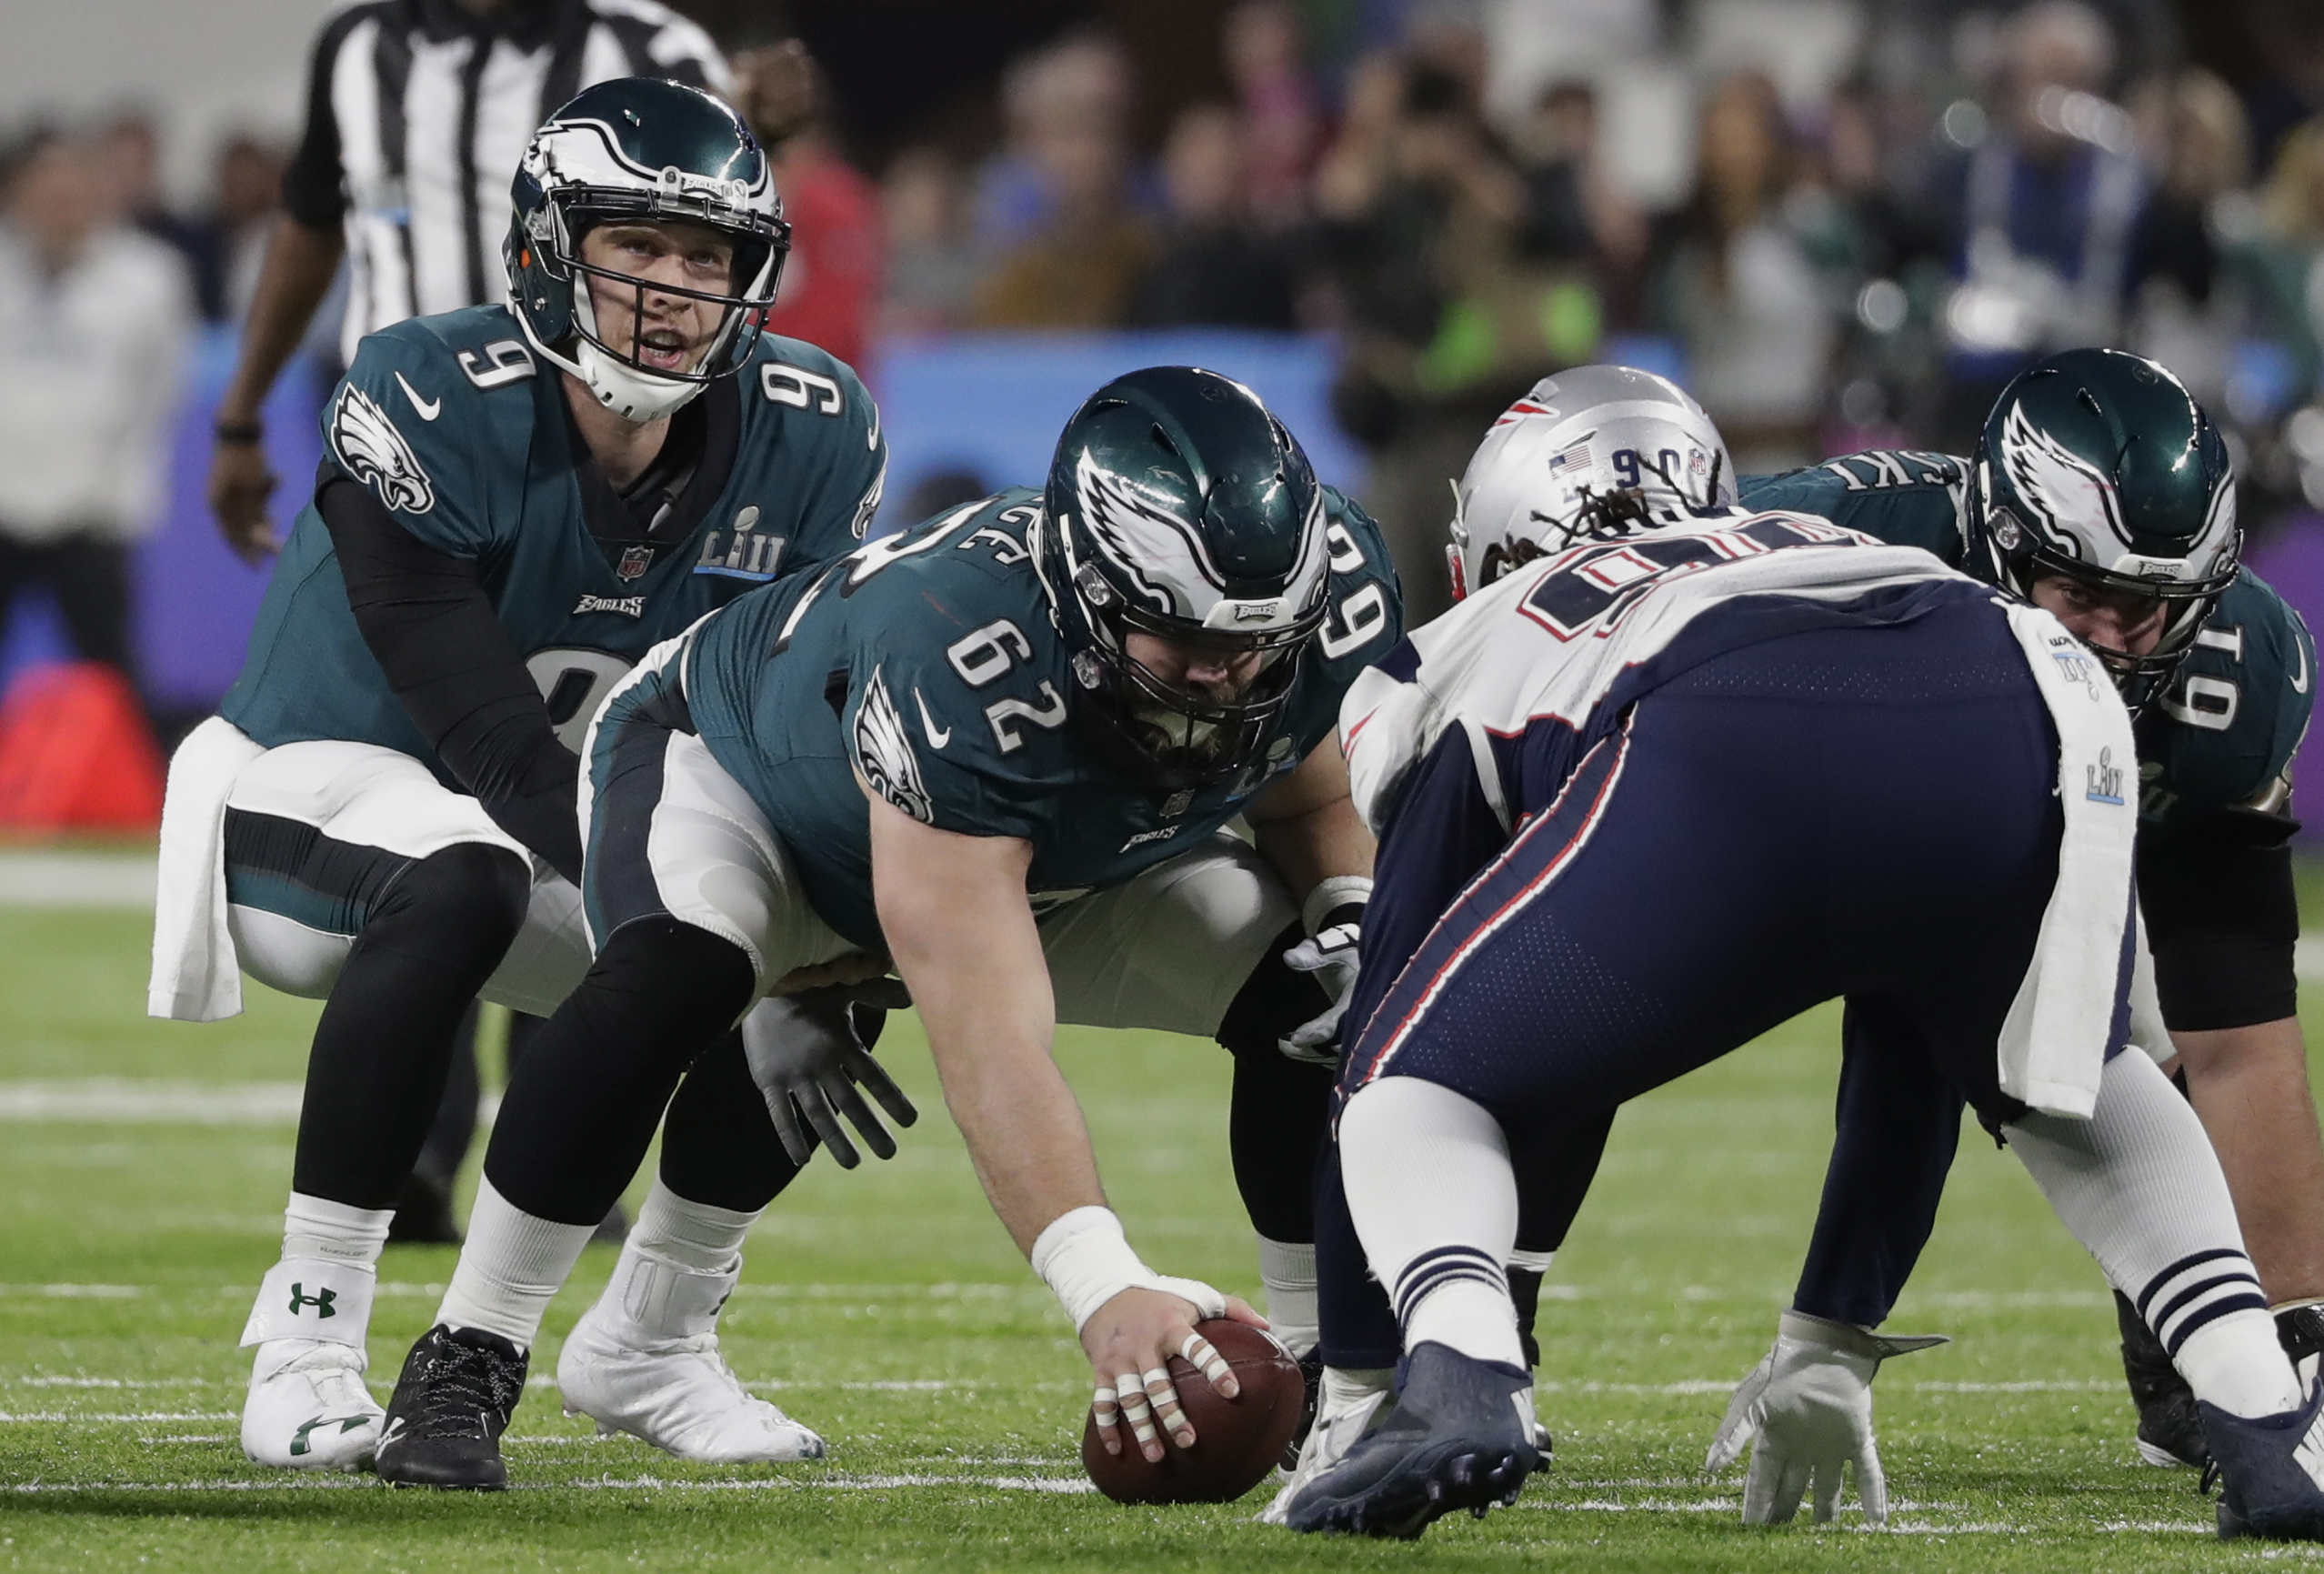 <div class='meta'><div class='origin-logo' data-origin='AP'></div><span class='caption-text' data-credit='AP Photo/Tony Gutierrez'>Philadelphia Eagles quarterback Nick Foles (9) calls a play, during the second half of the NFL Super Bowl 52 football game.</span></div>